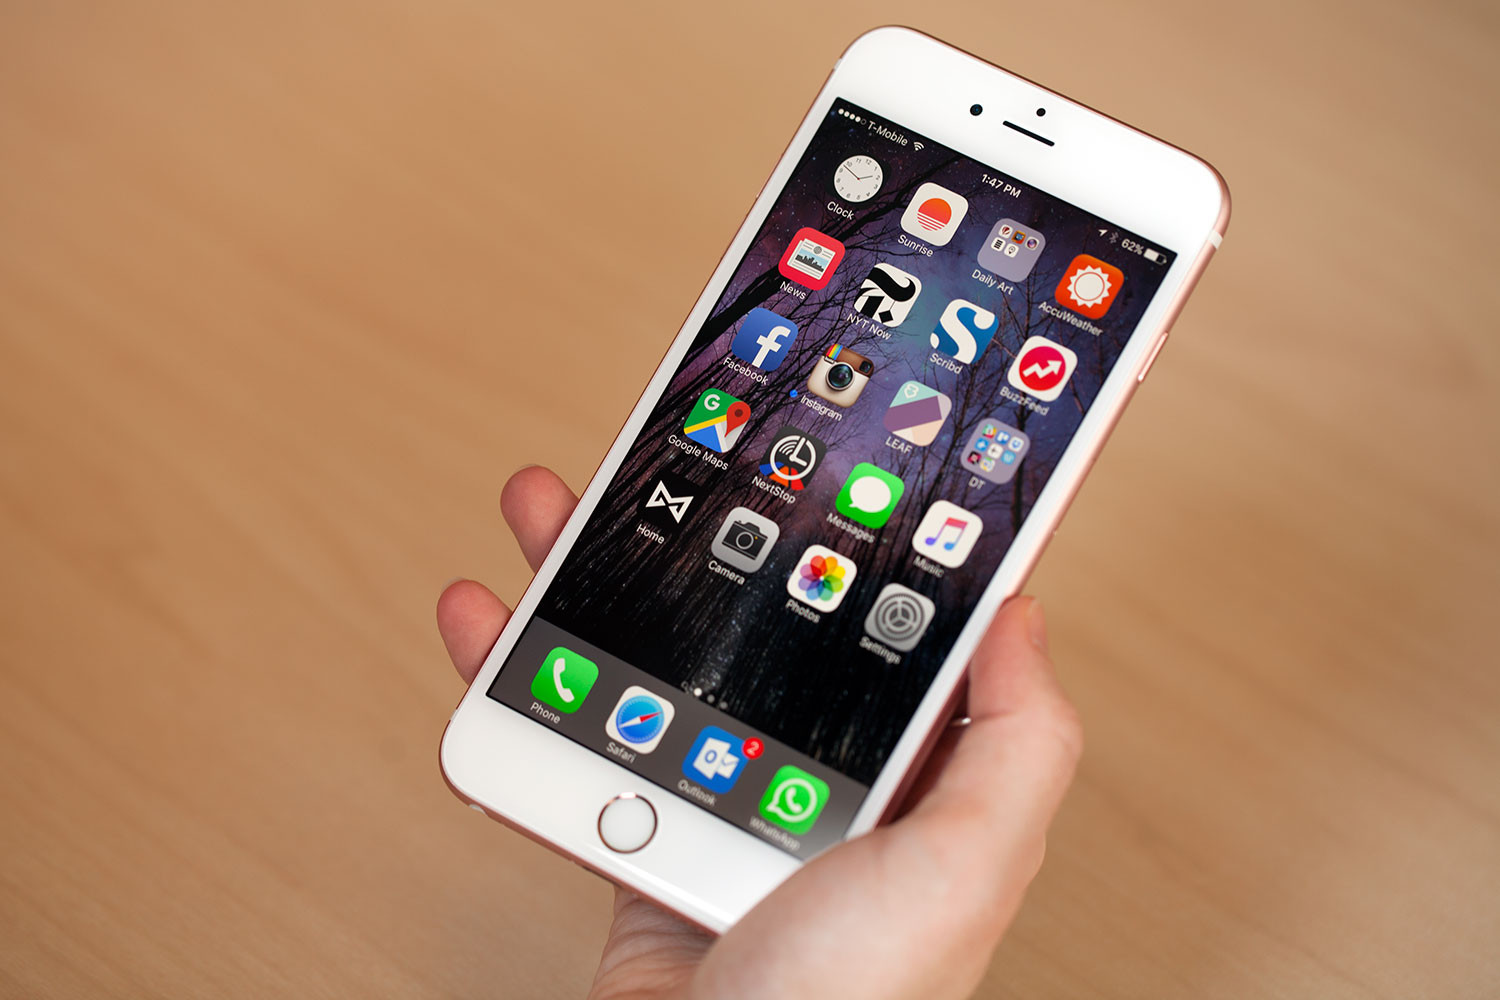 Why pay for apps? Nab these 10 paid iPhone apps on sale now